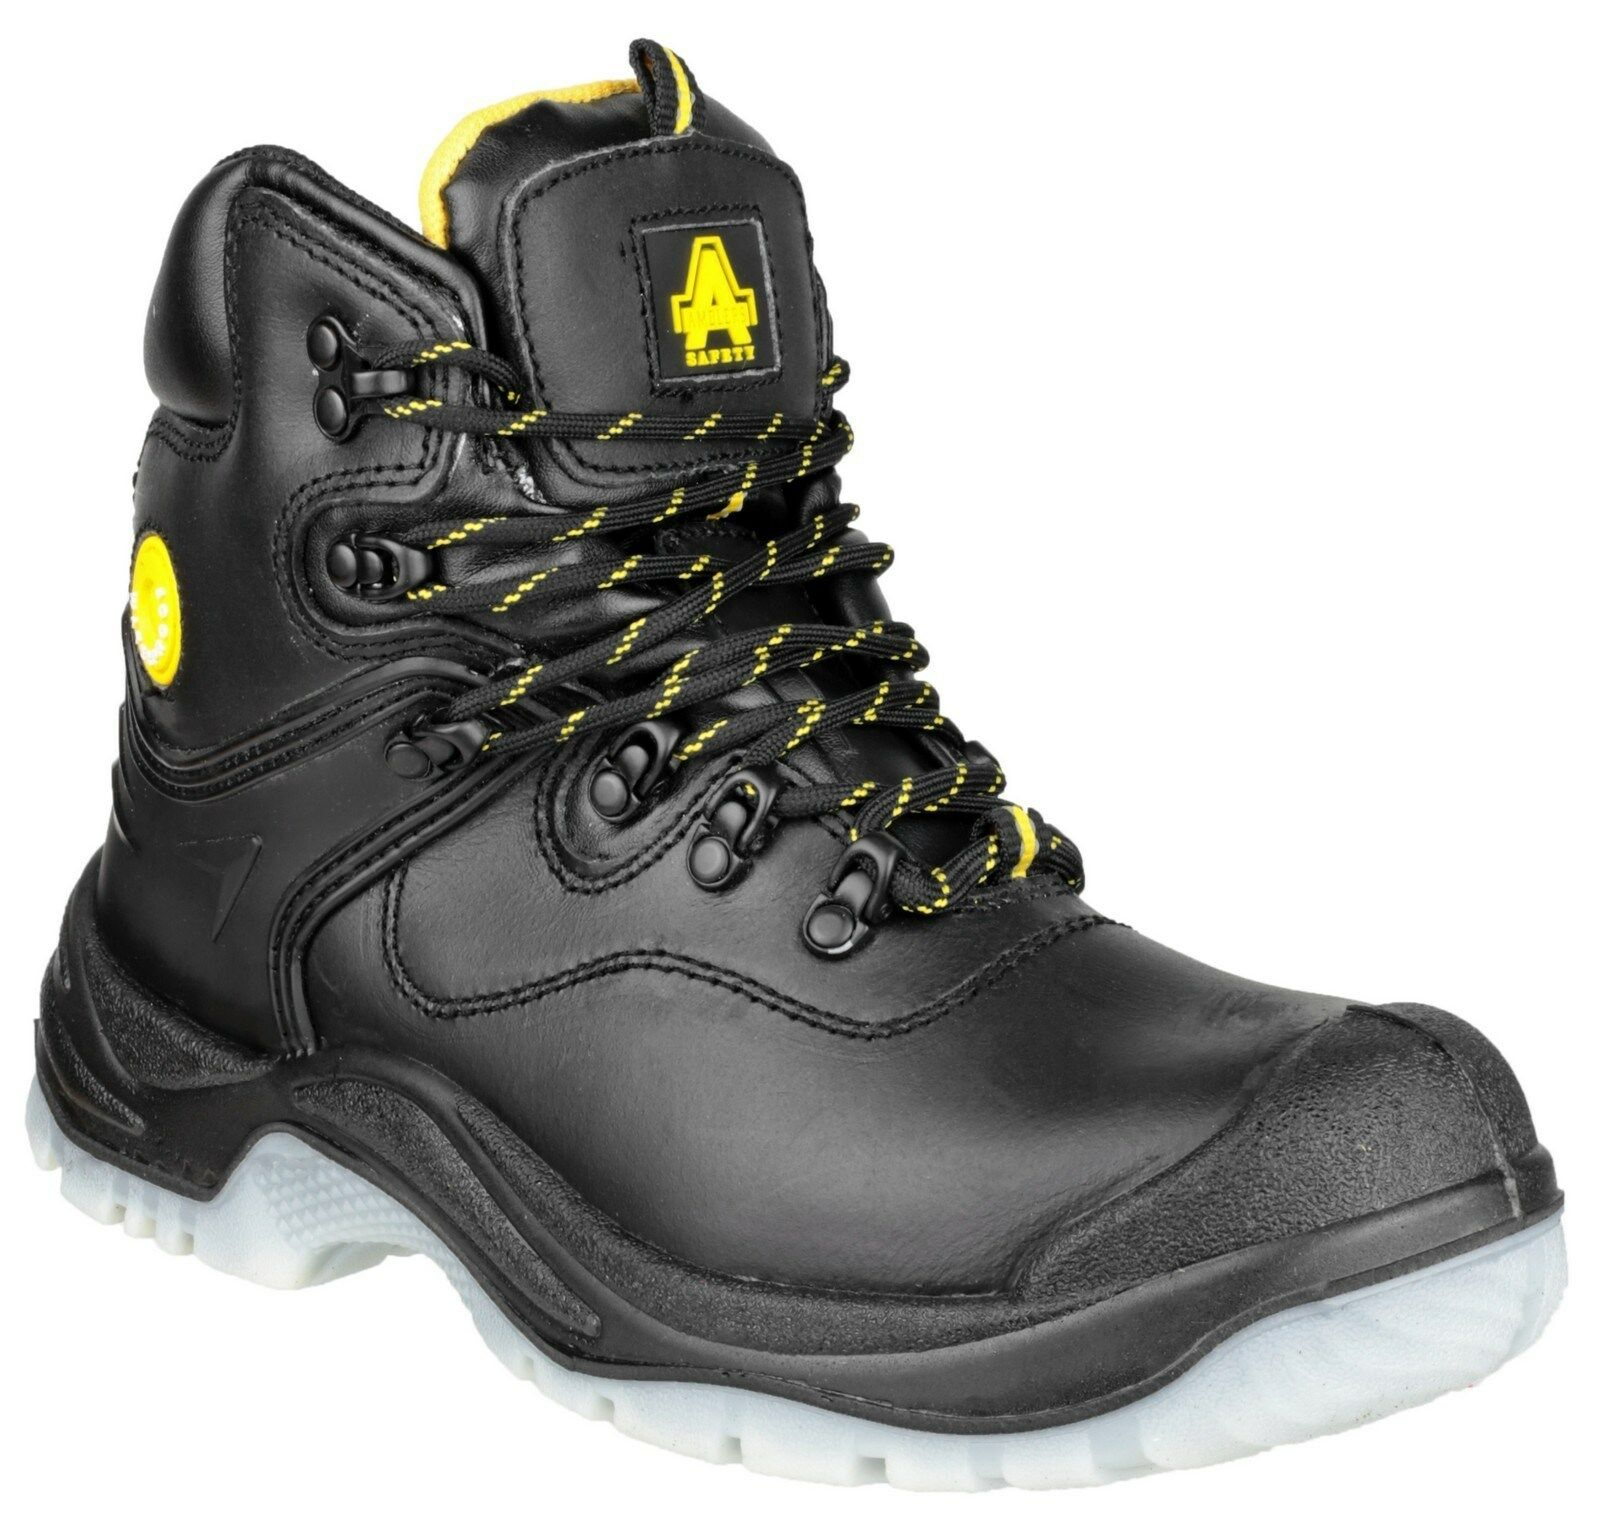 Amblers FS198 Safety Cap botas Hombre Mujer Waterproof Steel Toe Cap Safety Work Zapatos 5cc6e6